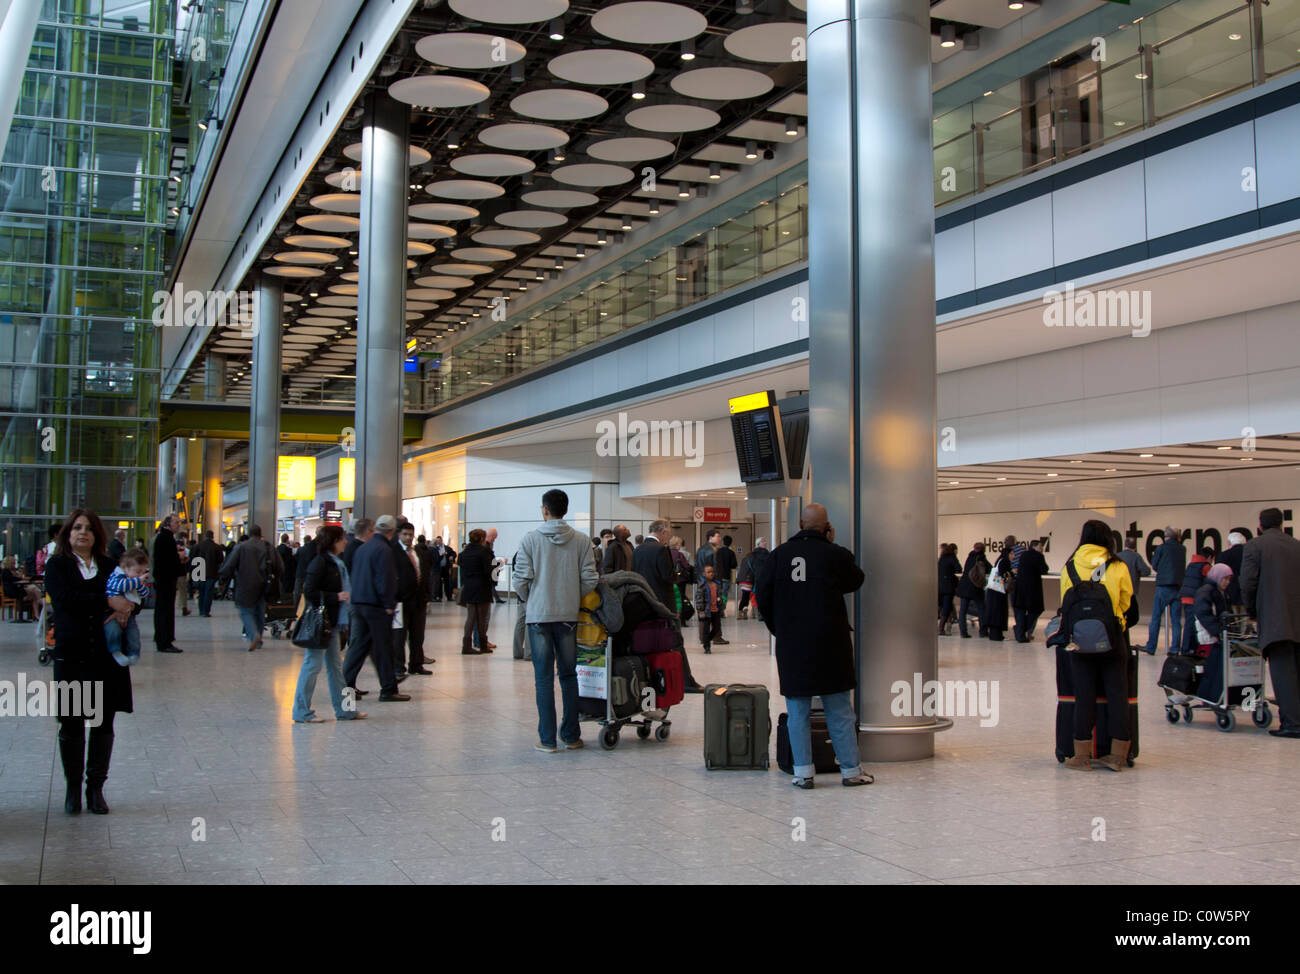 Arrivals Hall - Terminal 5 - Heathrow Airport  - London - Stock Image